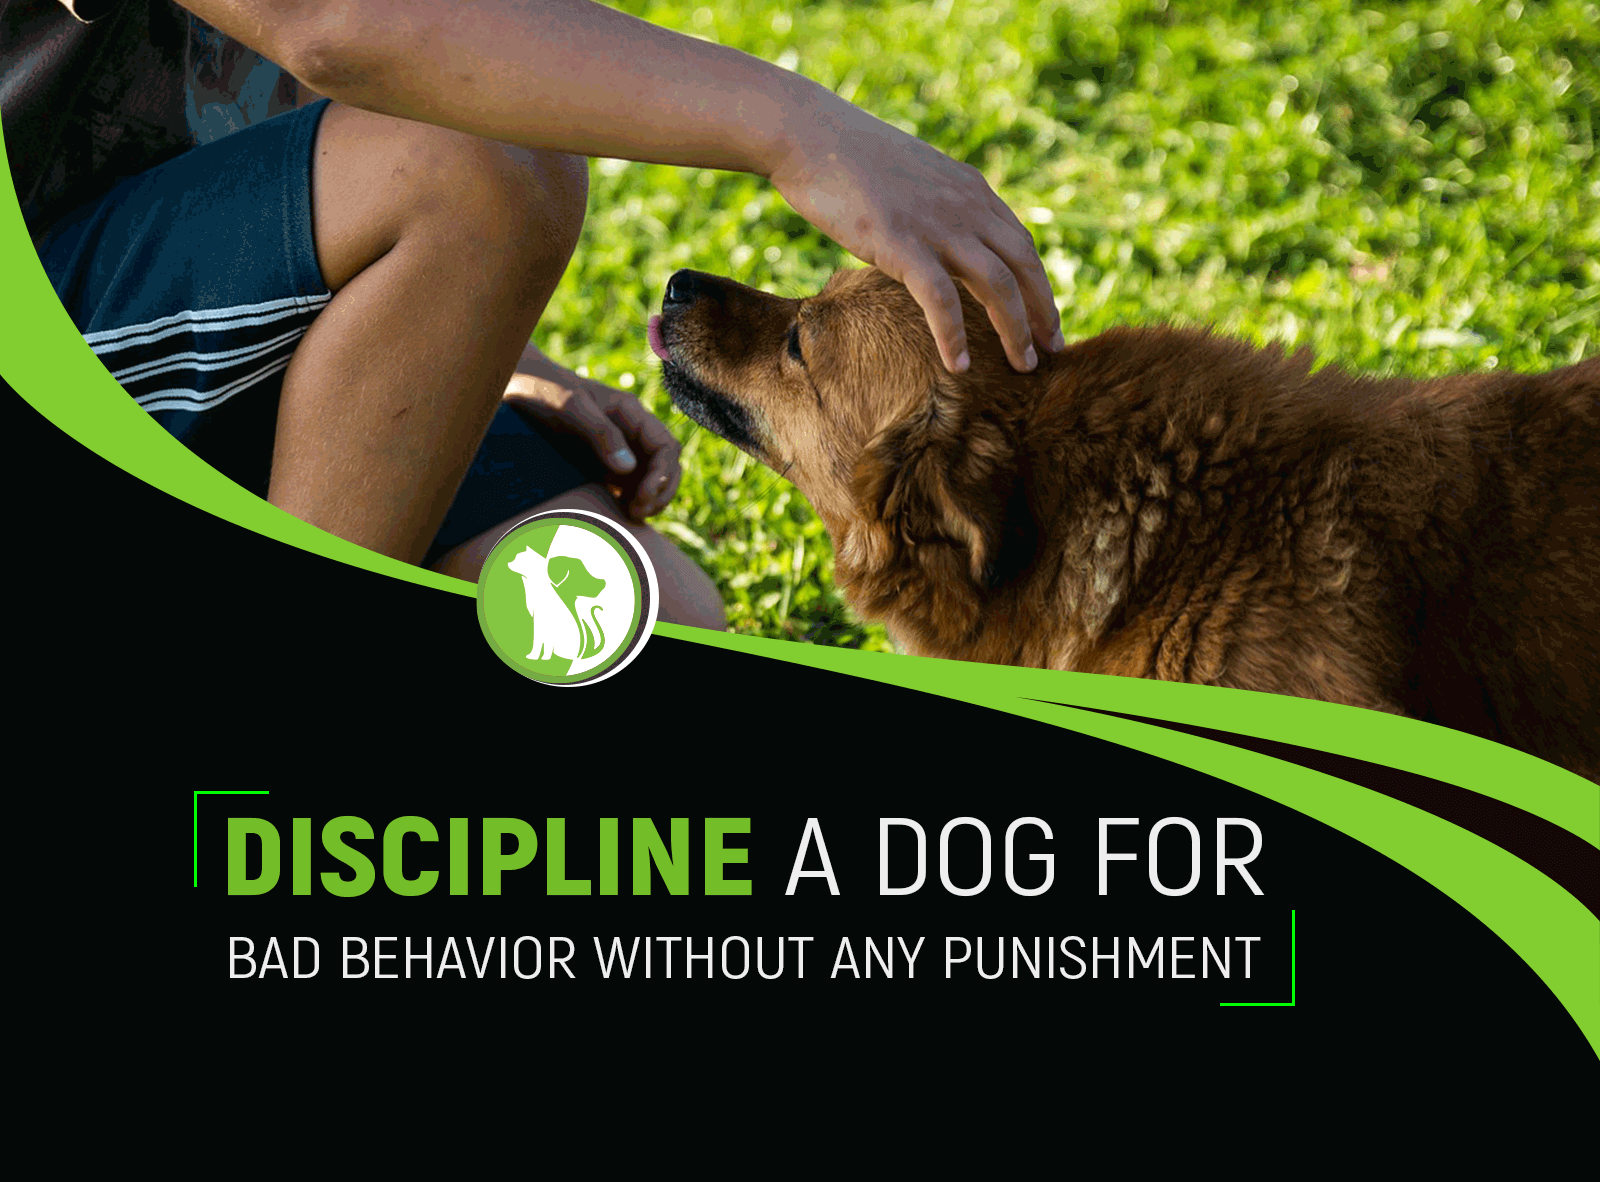 How to Discipline a Dog for Bad Behavior Without Any Punishment